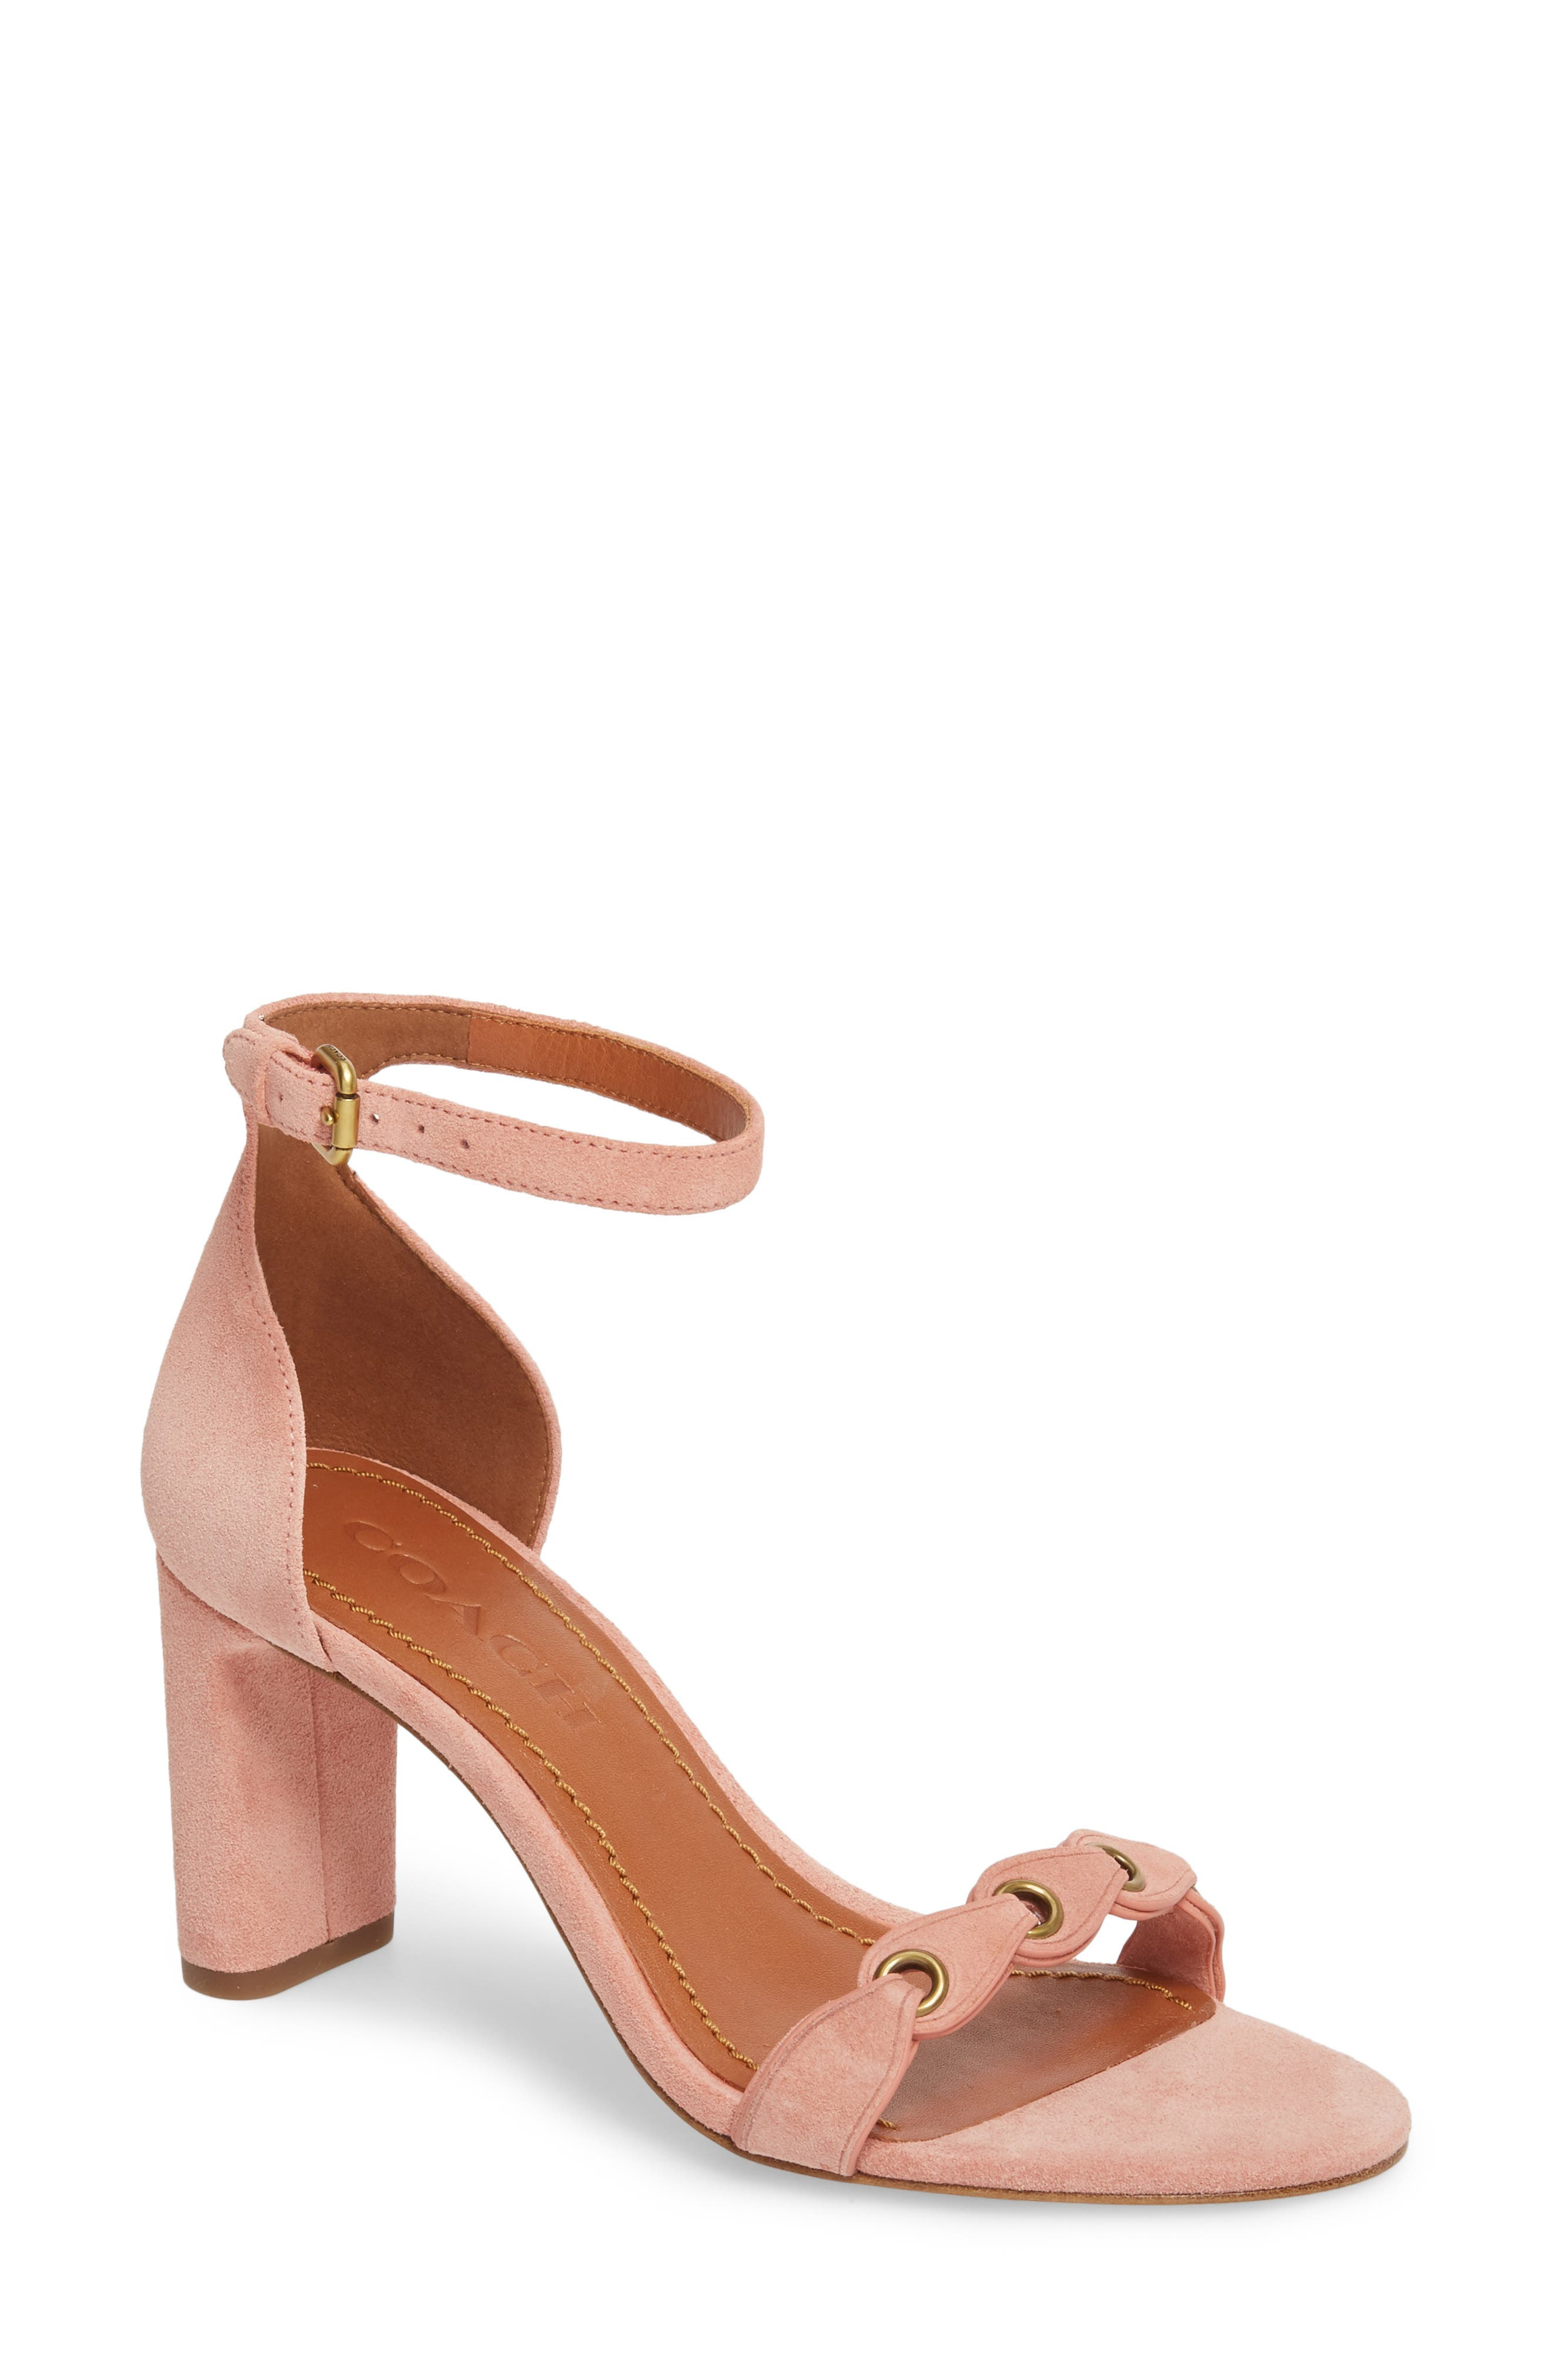 Link Strap Sandal,                         Main,                         color, Peony Leather